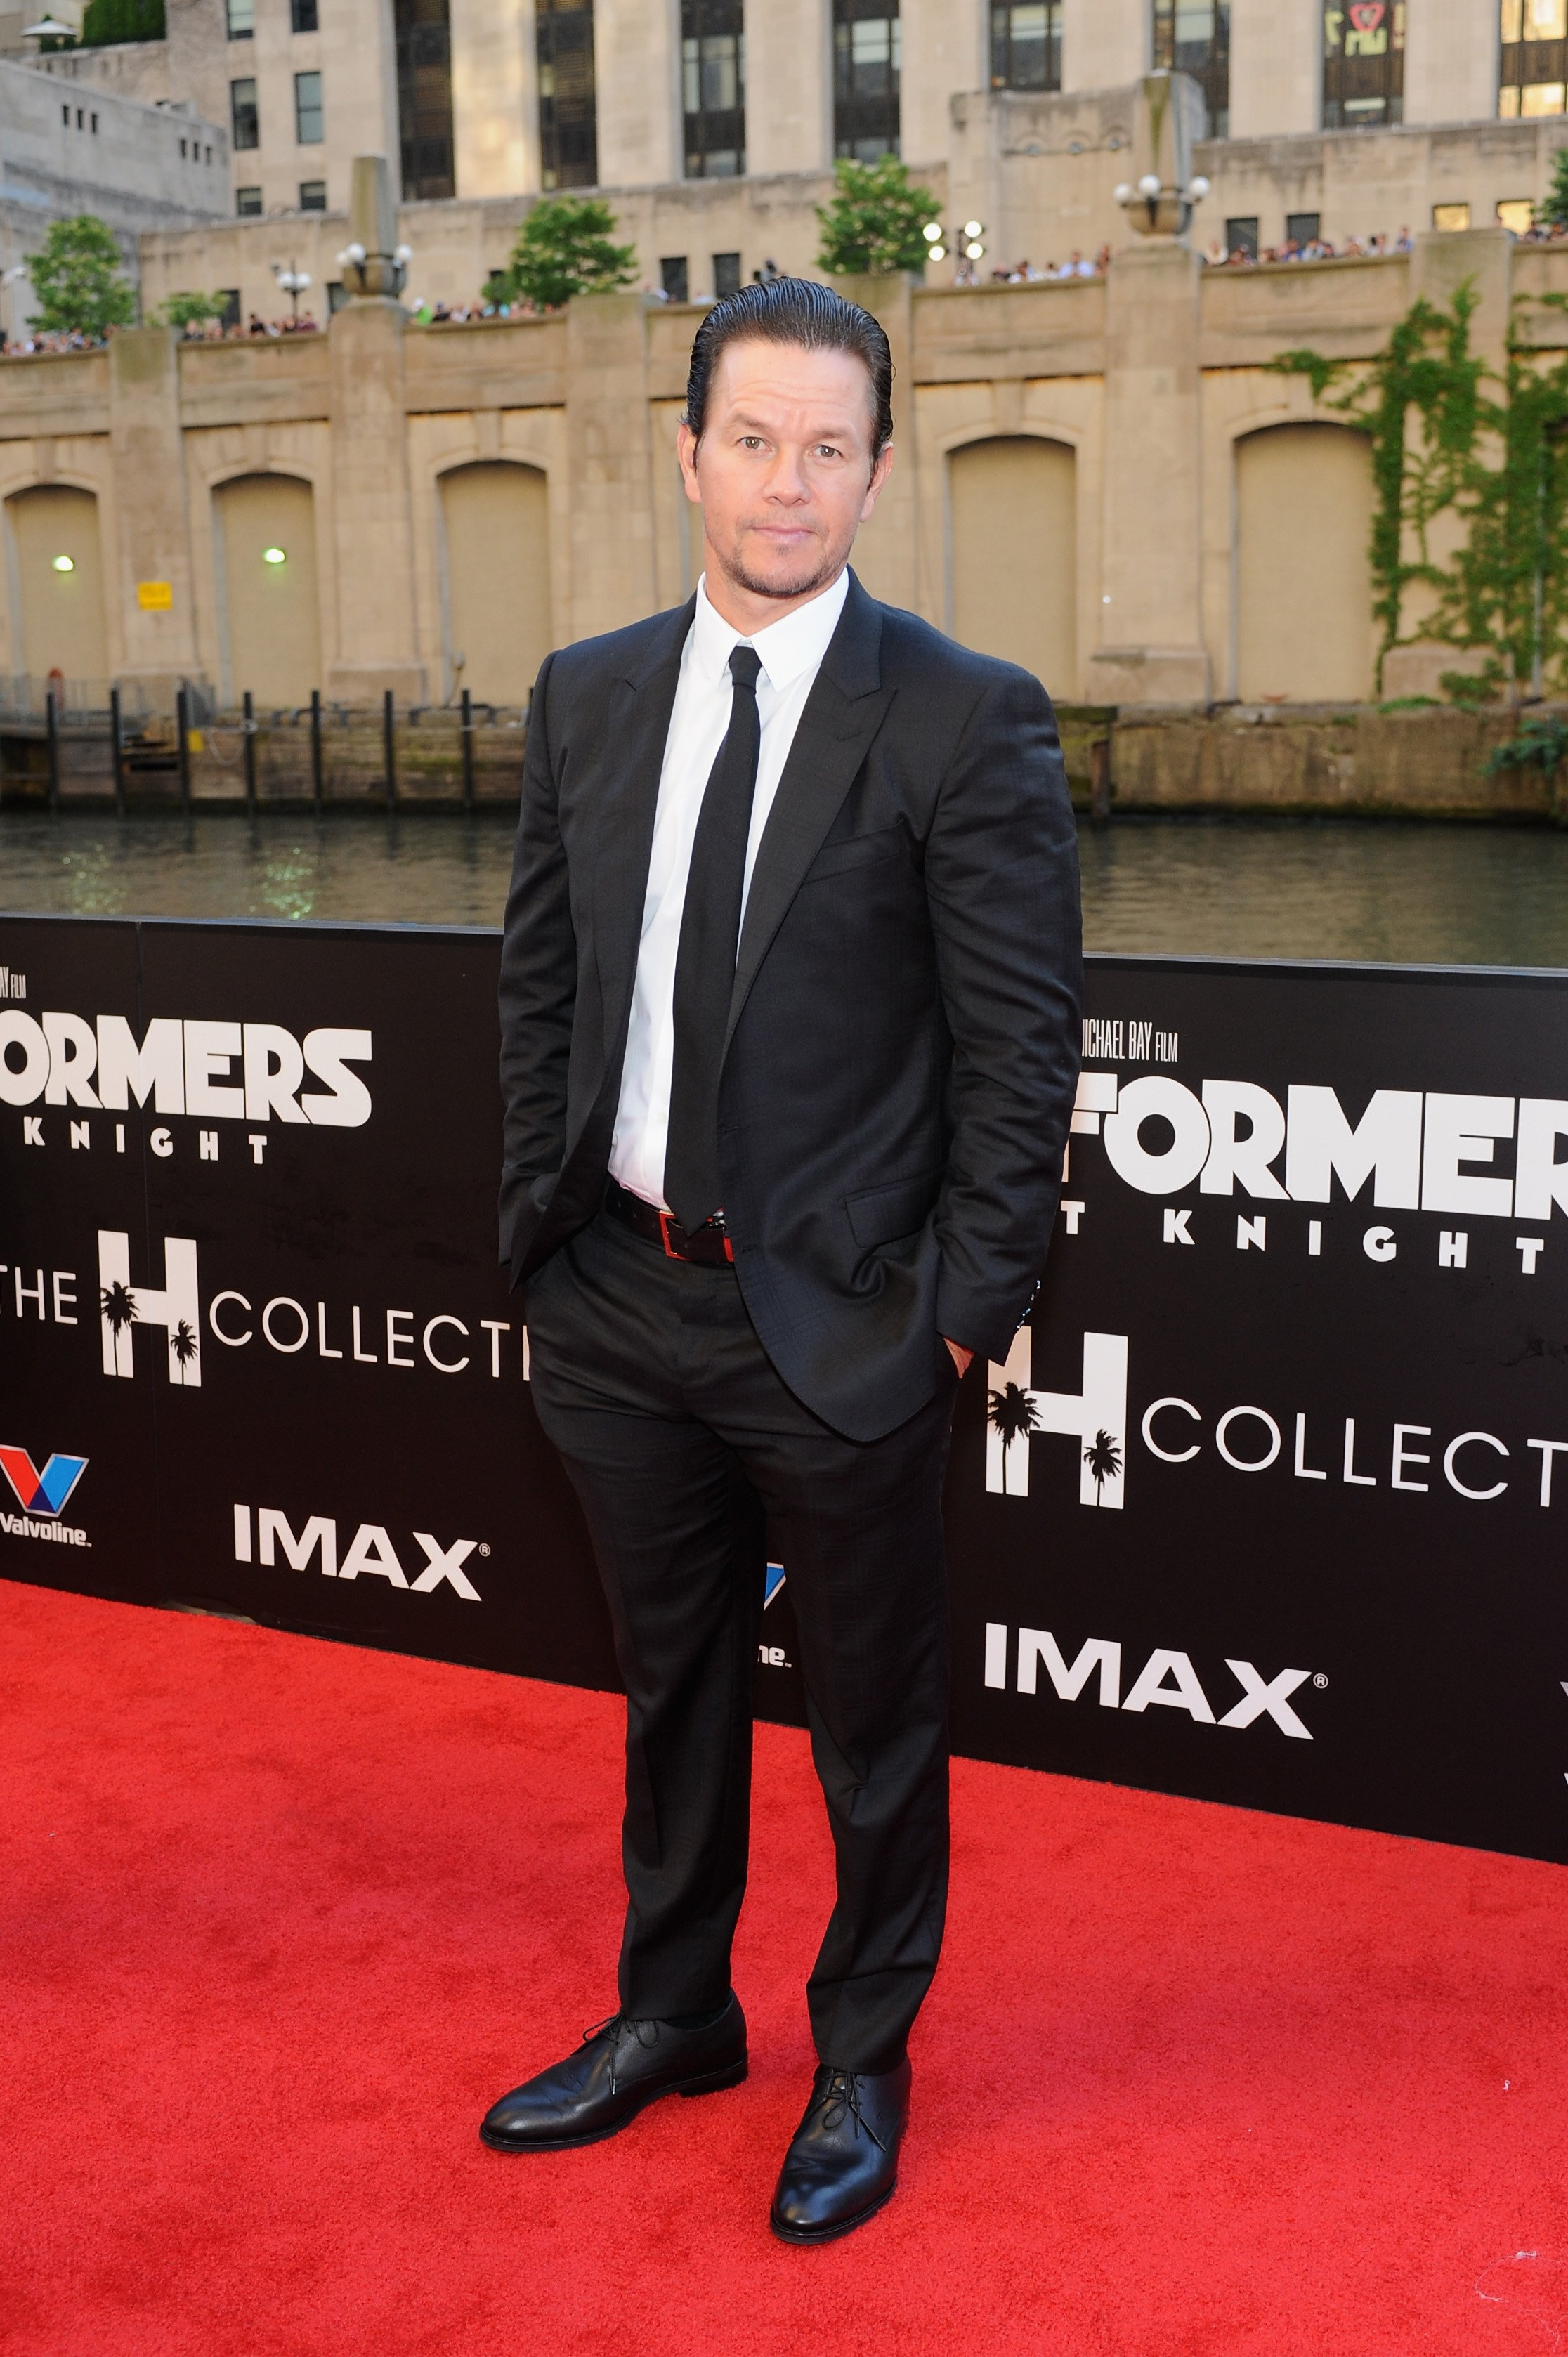 Mark Wahlberg attends the U.S. premiere of 'Transformers: The Last Knight' at the Civic Opera House on June 20, 2017 in Chicago